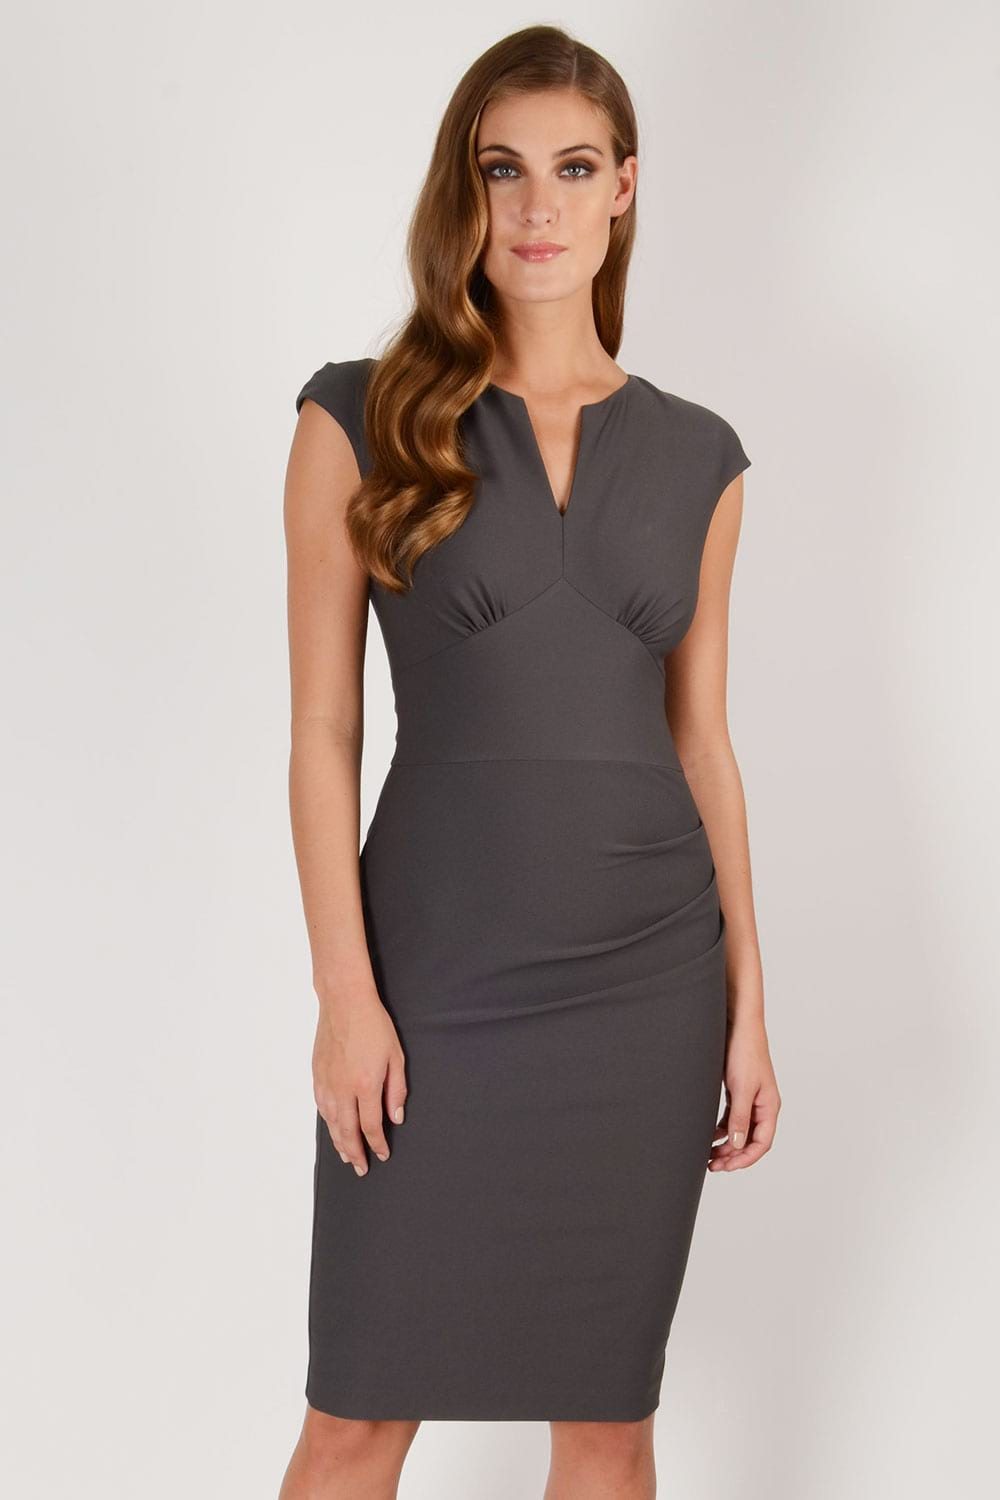 Hybrid Fashion 1241 Felicity Cap Sleeve Pencil Dress